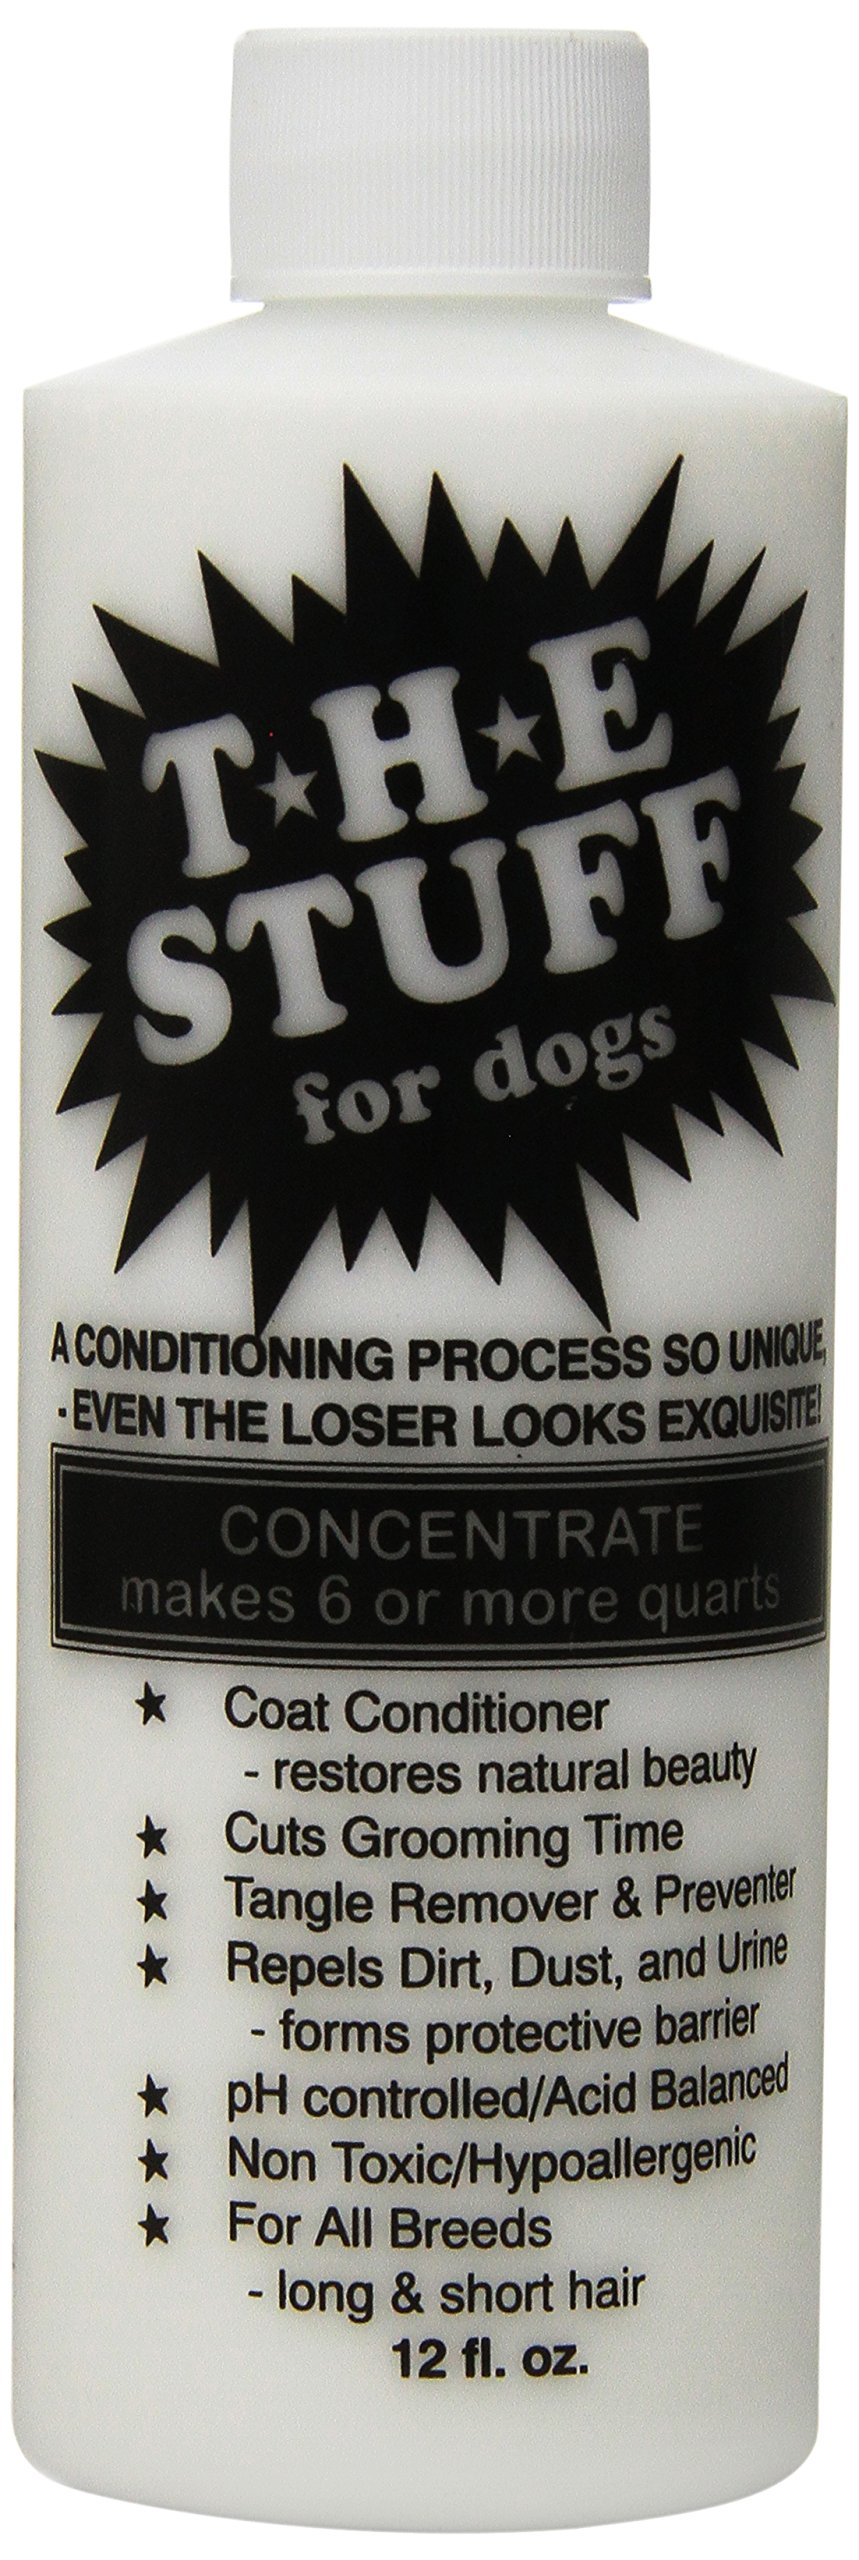 The Stuff Dog 15 to 1 Concentrate Conditioner Bottle, 12 oz by The Stuff